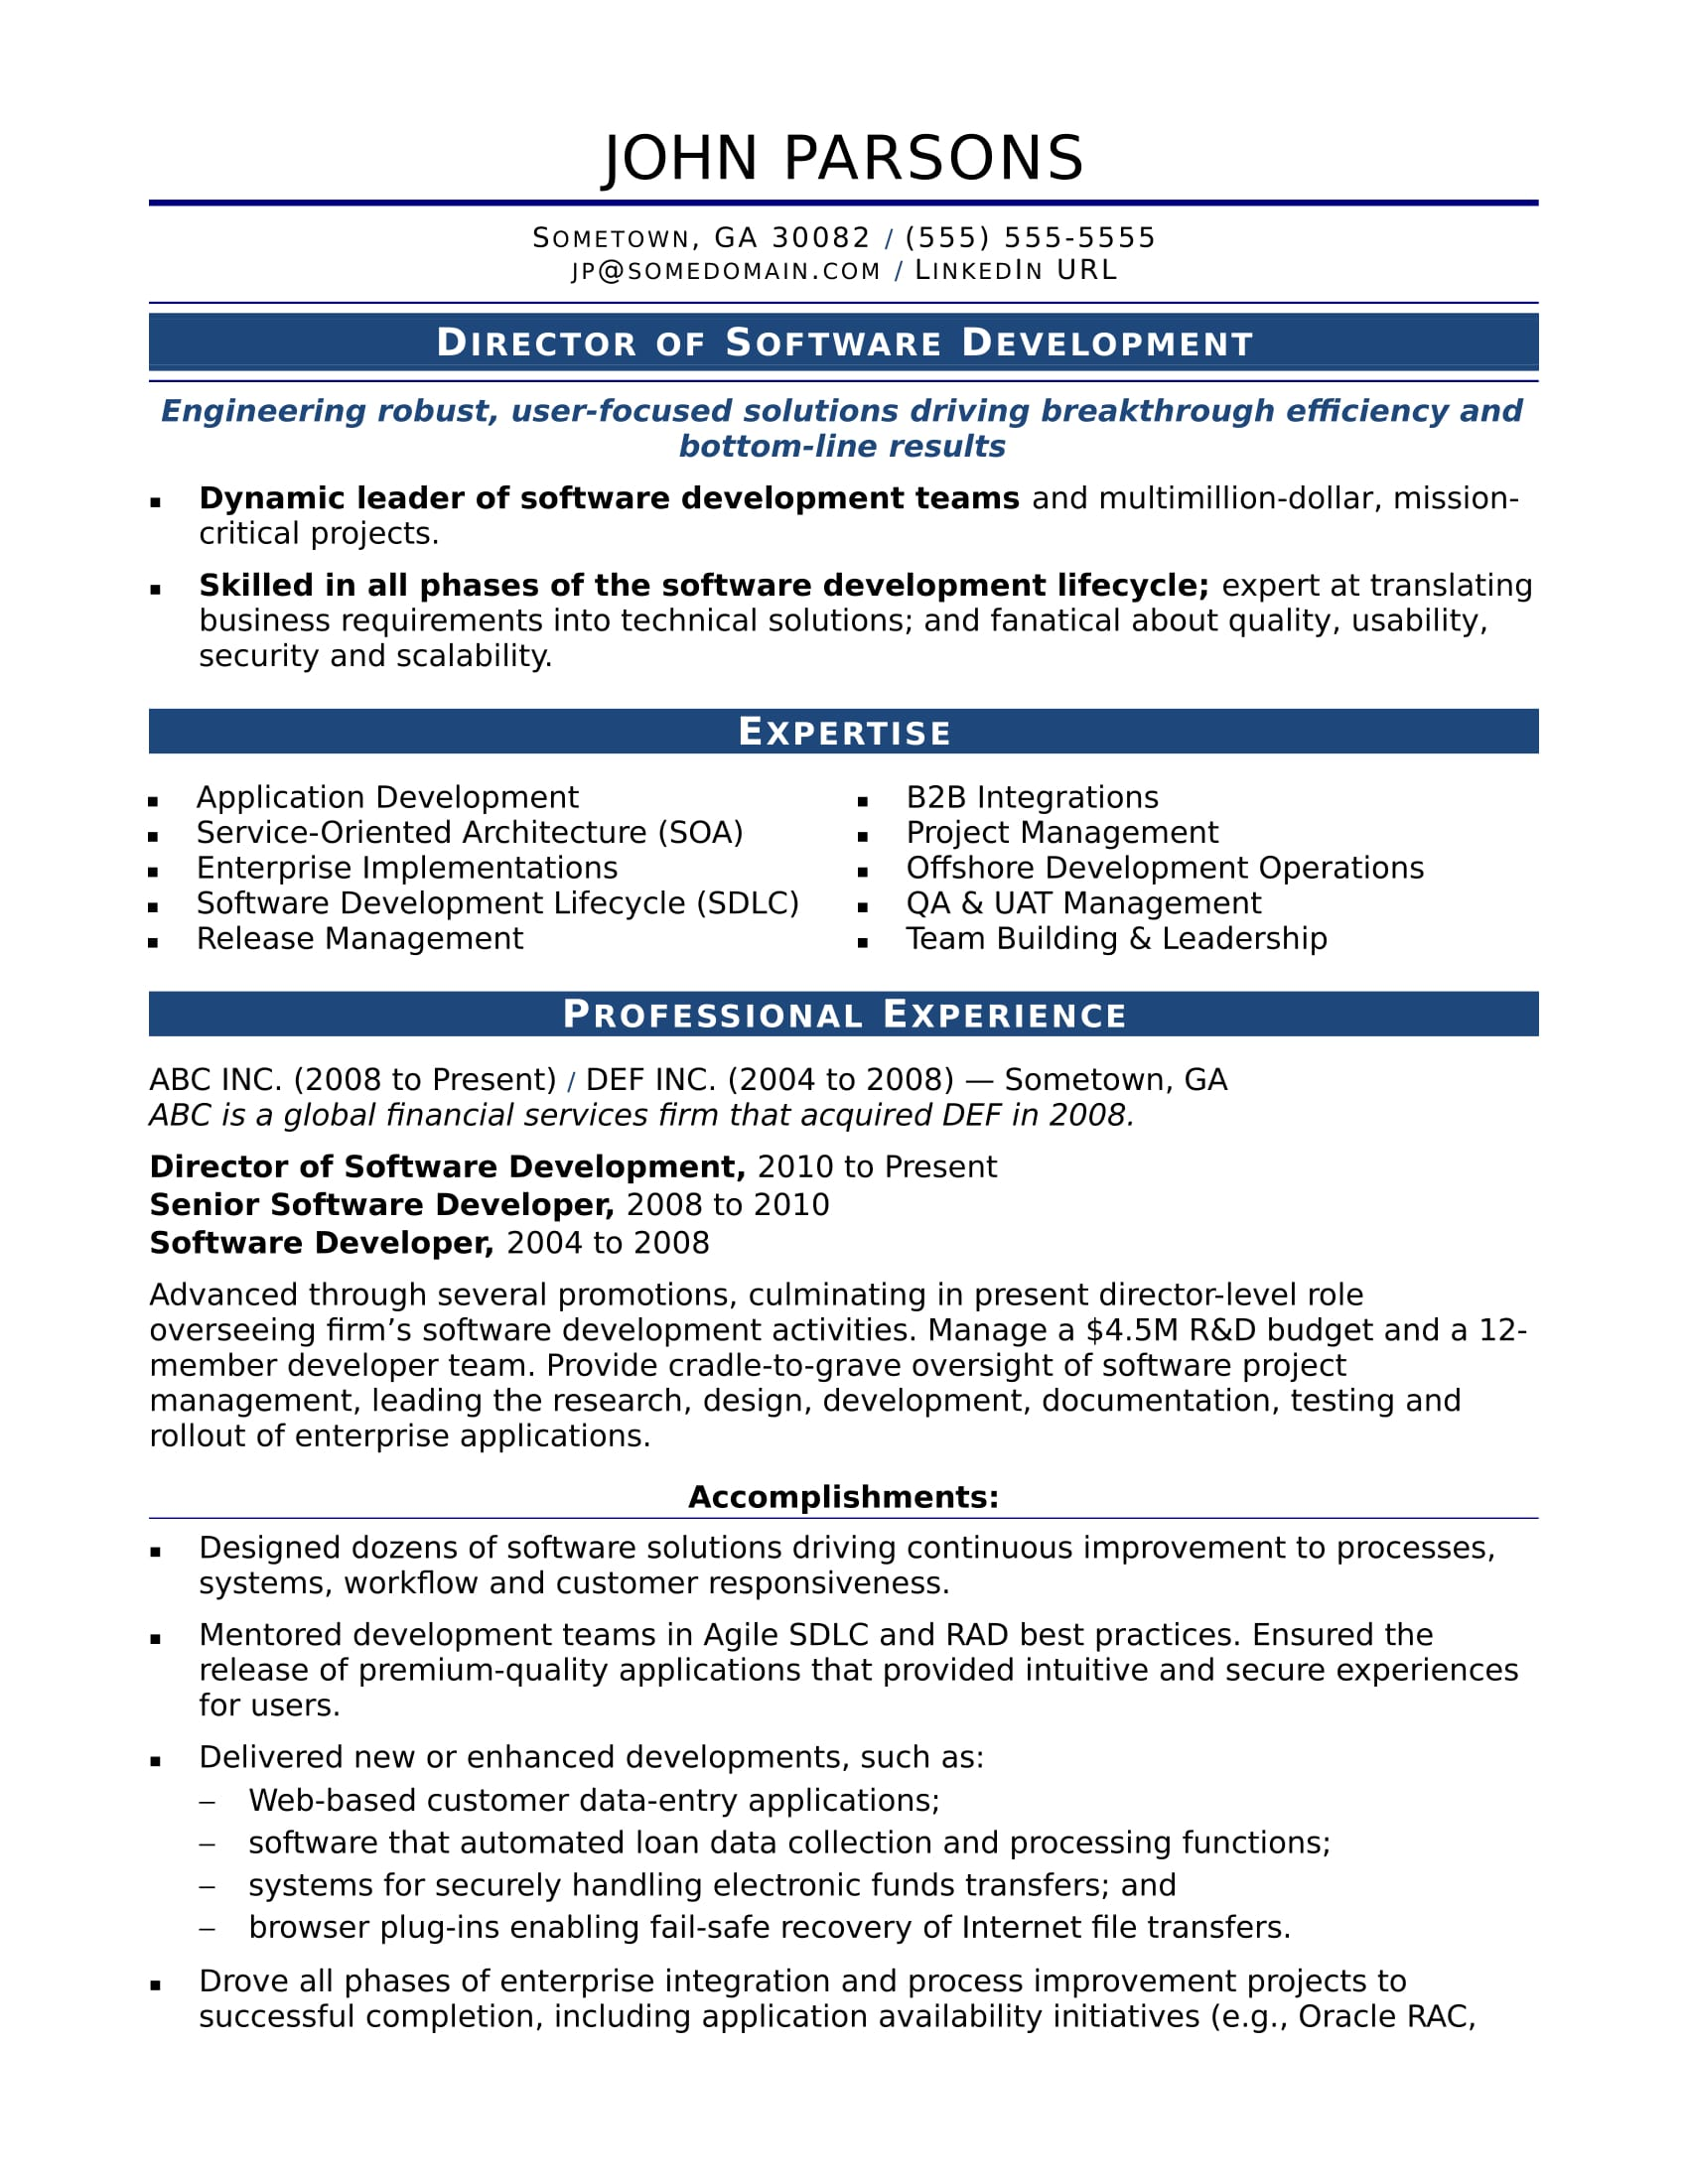 sample resume for an experienced it developer - Software Developer Resume